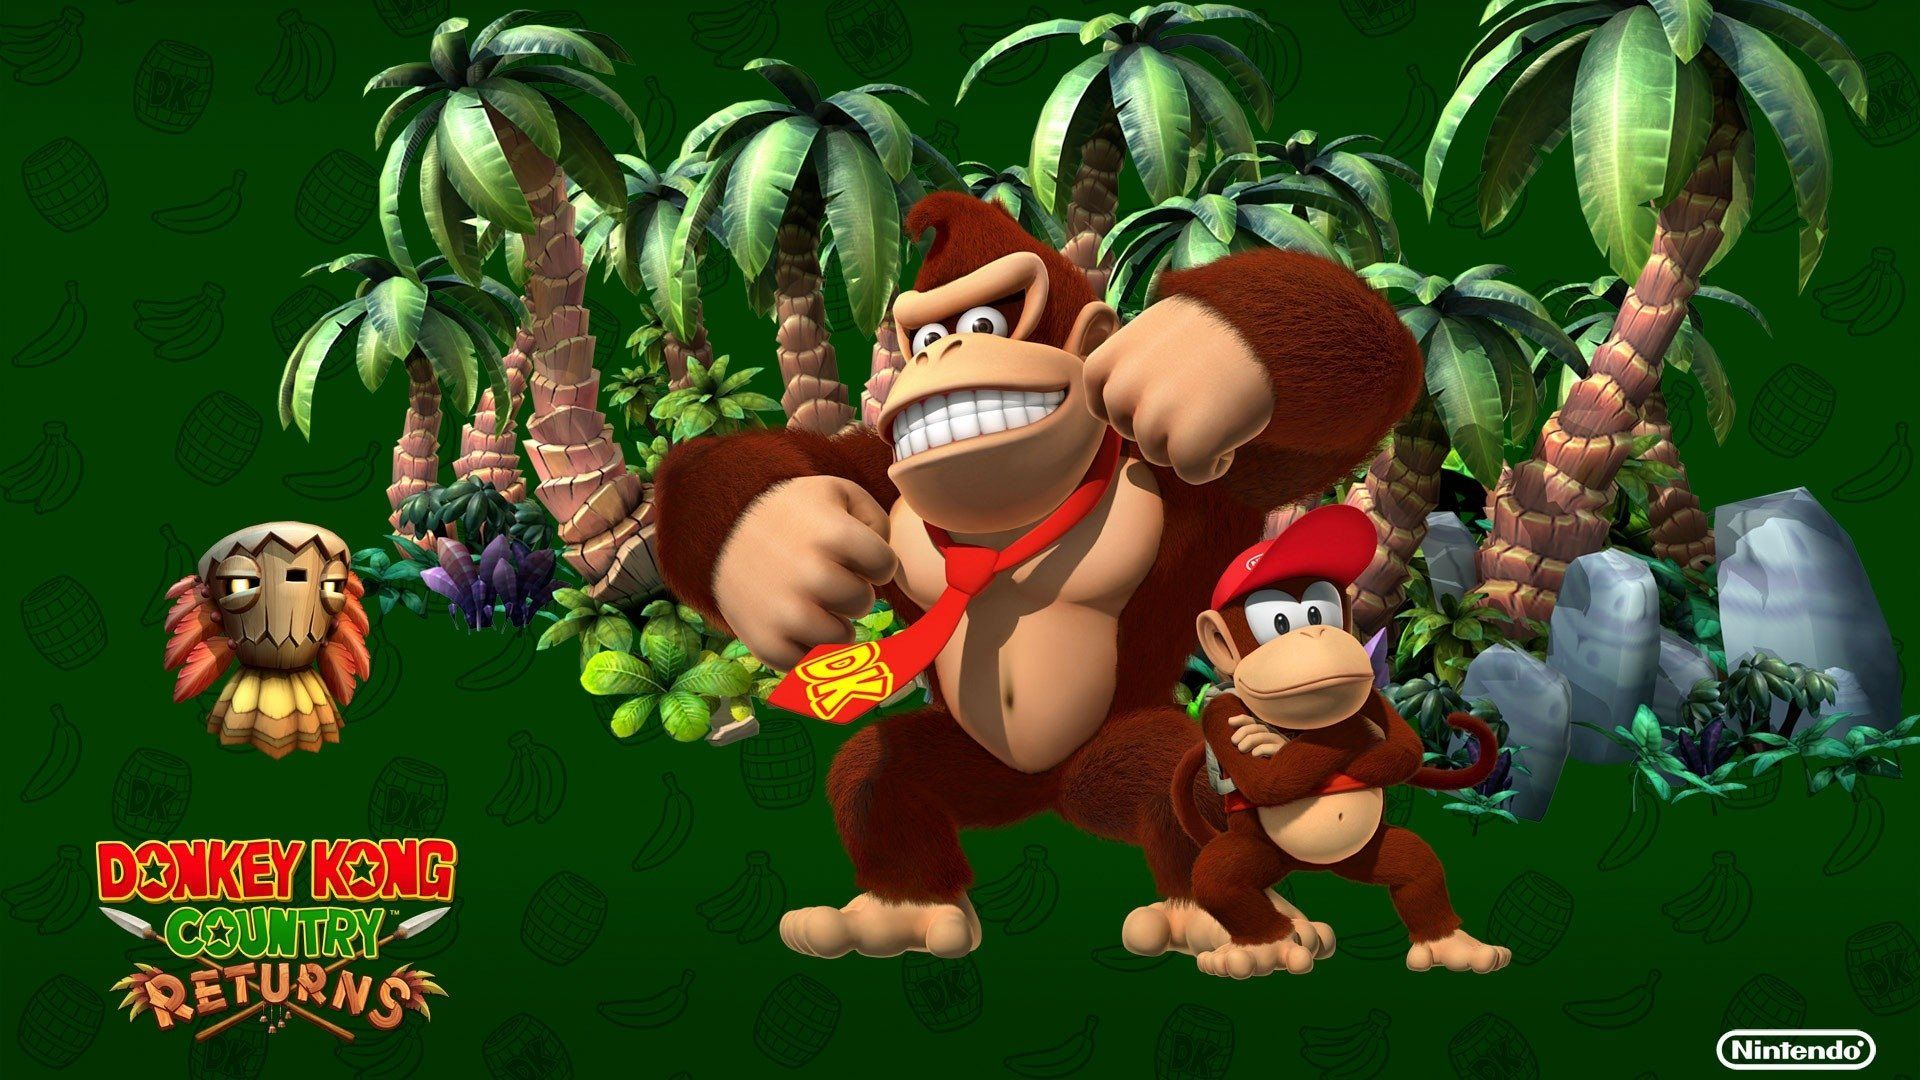 Donkey Kong Wallpapers Top Free Donkey Kong Backgrounds